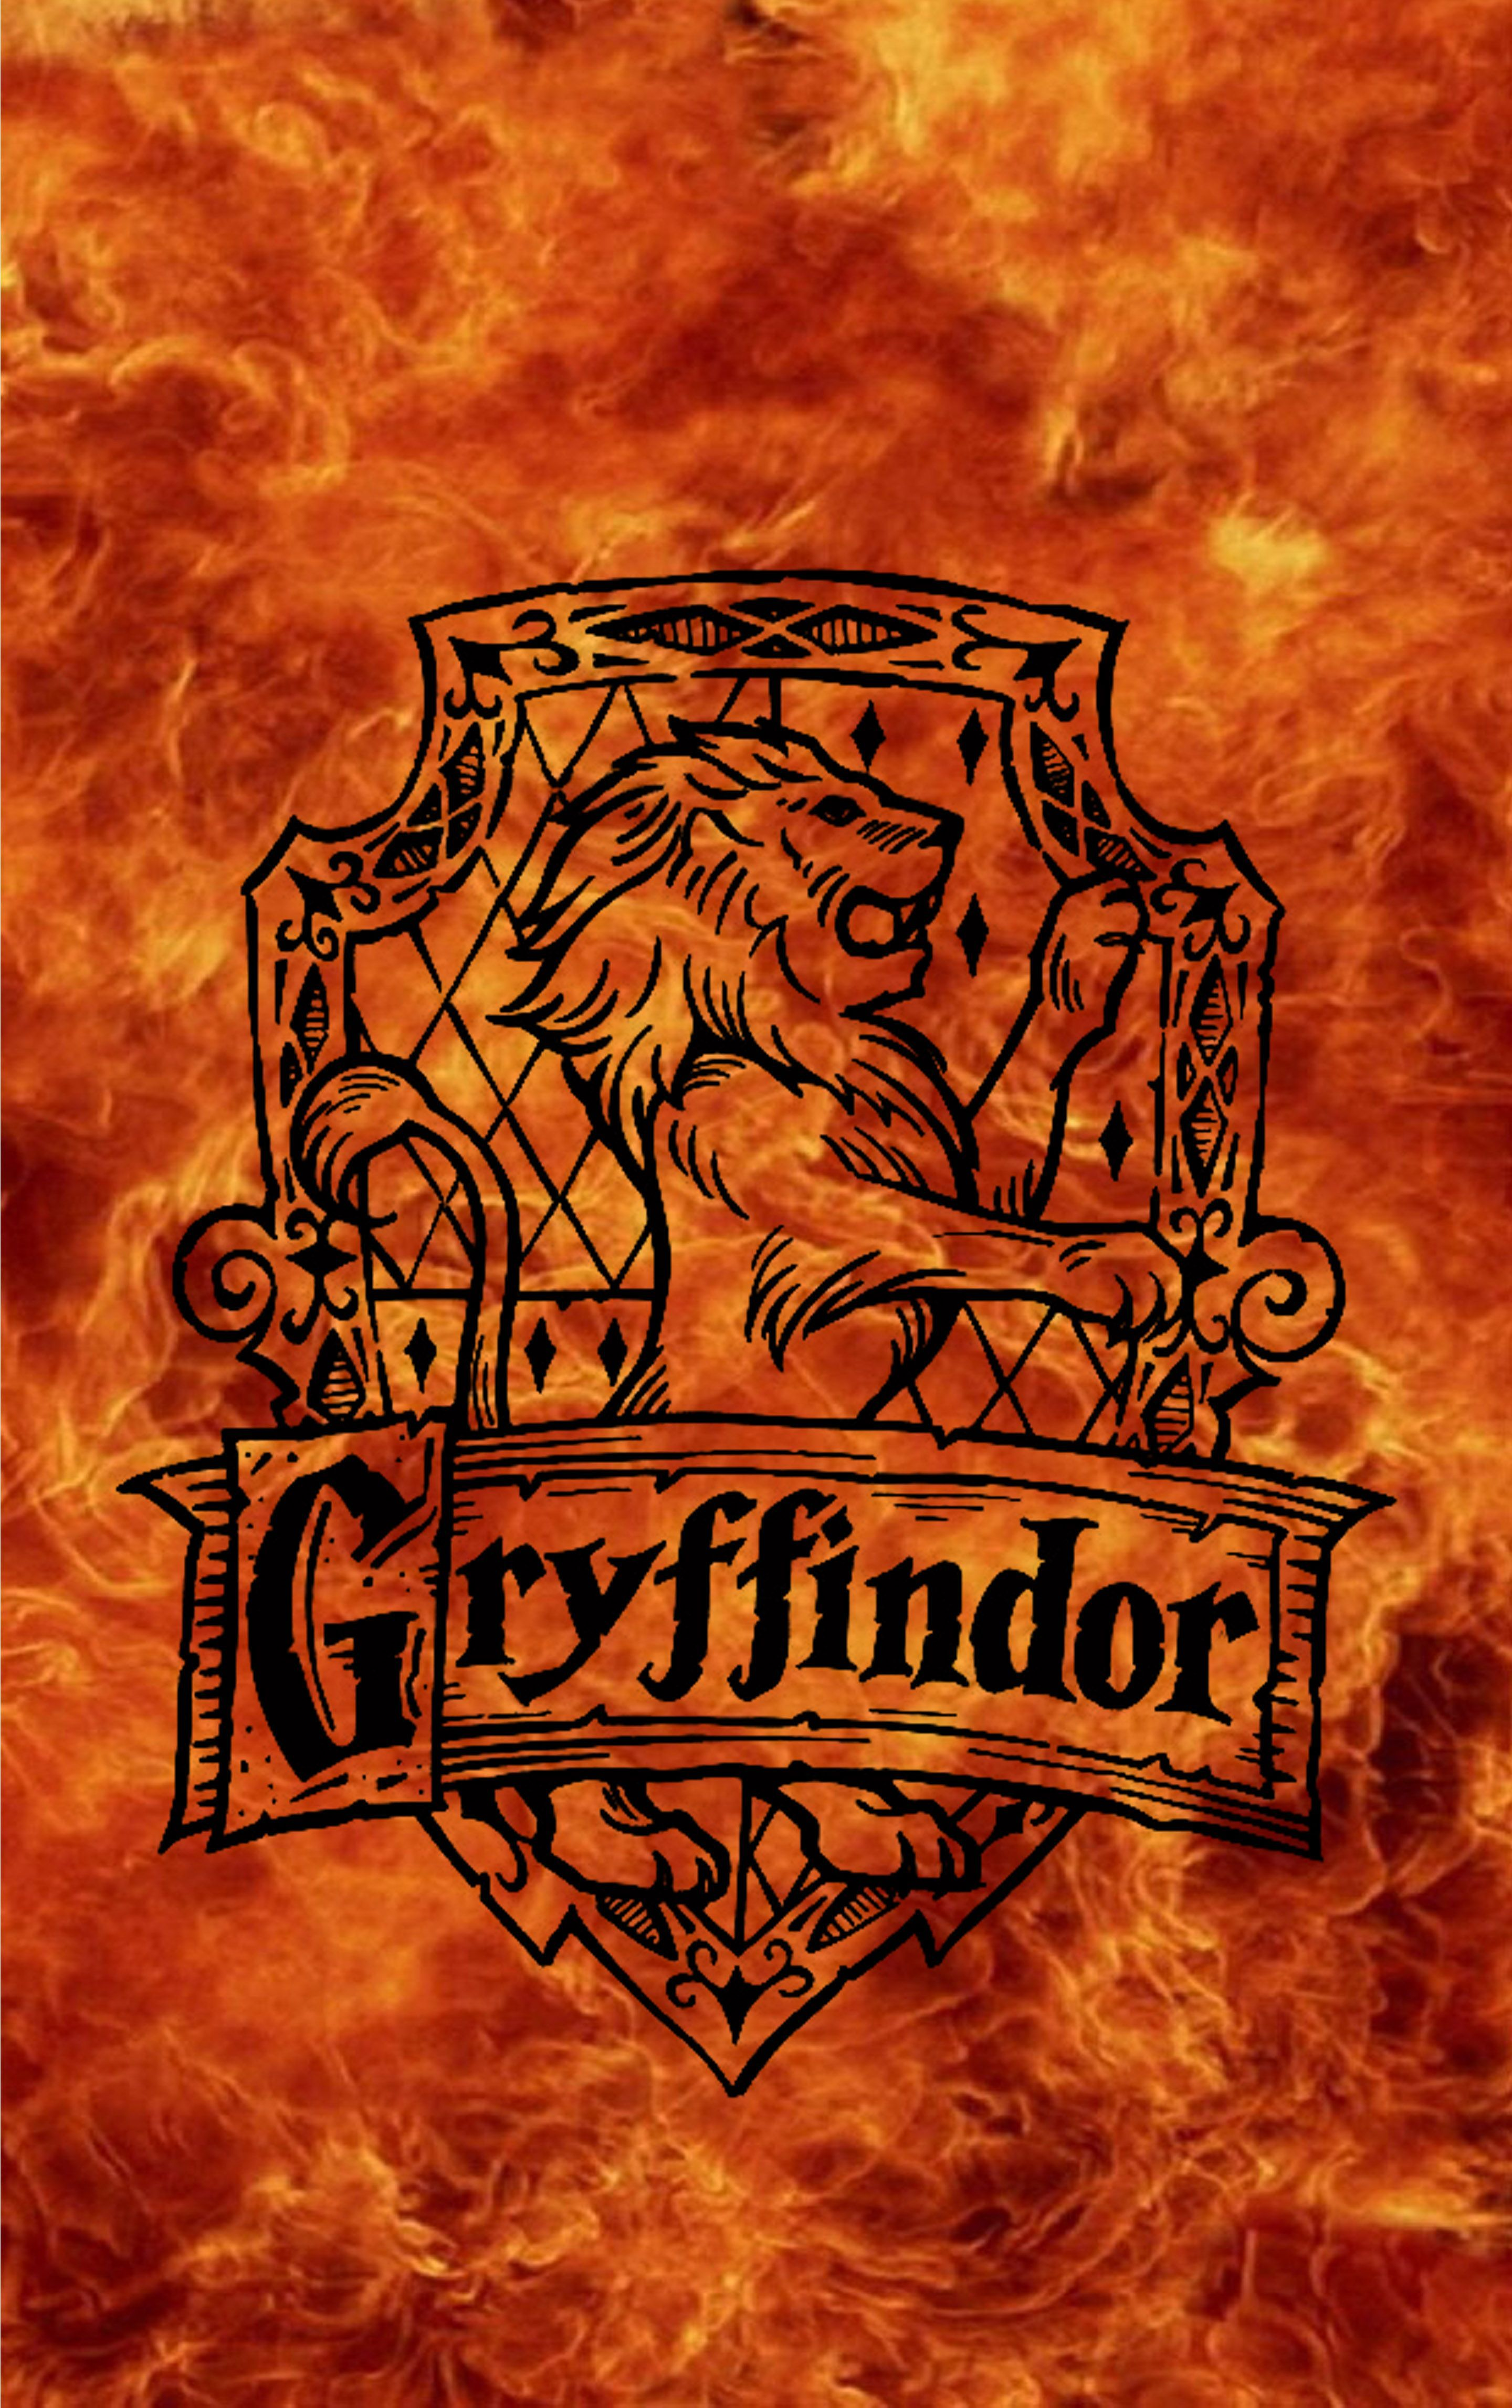 phone wall paper harry potter phonewallpaper Gryf, 2020